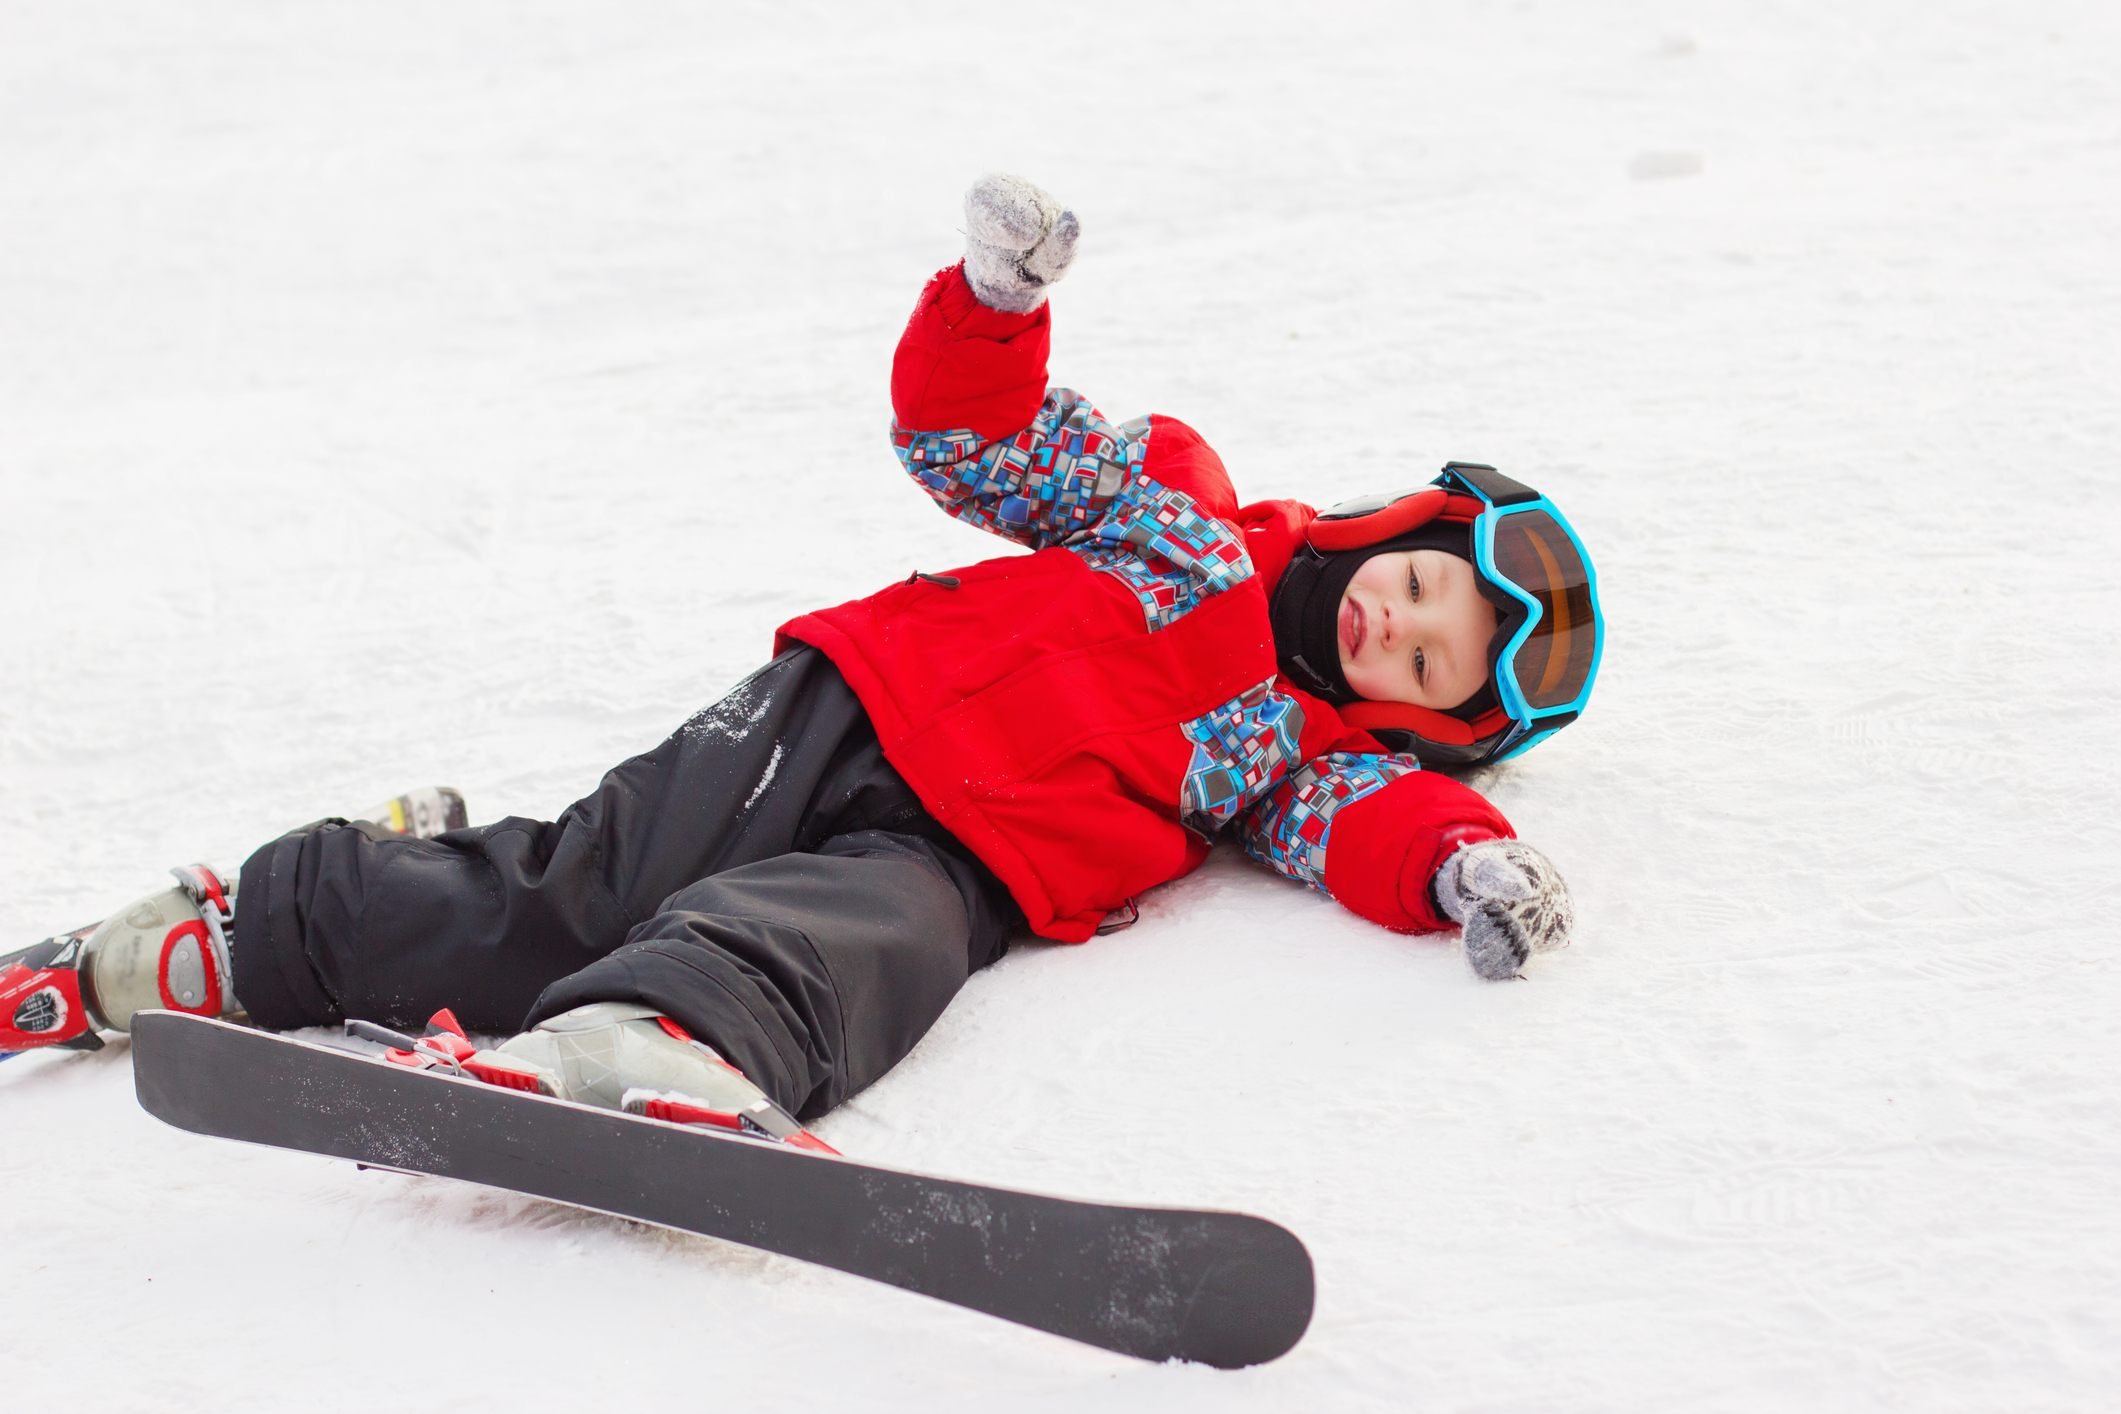 Little cute boy with skis and a ski outfit.